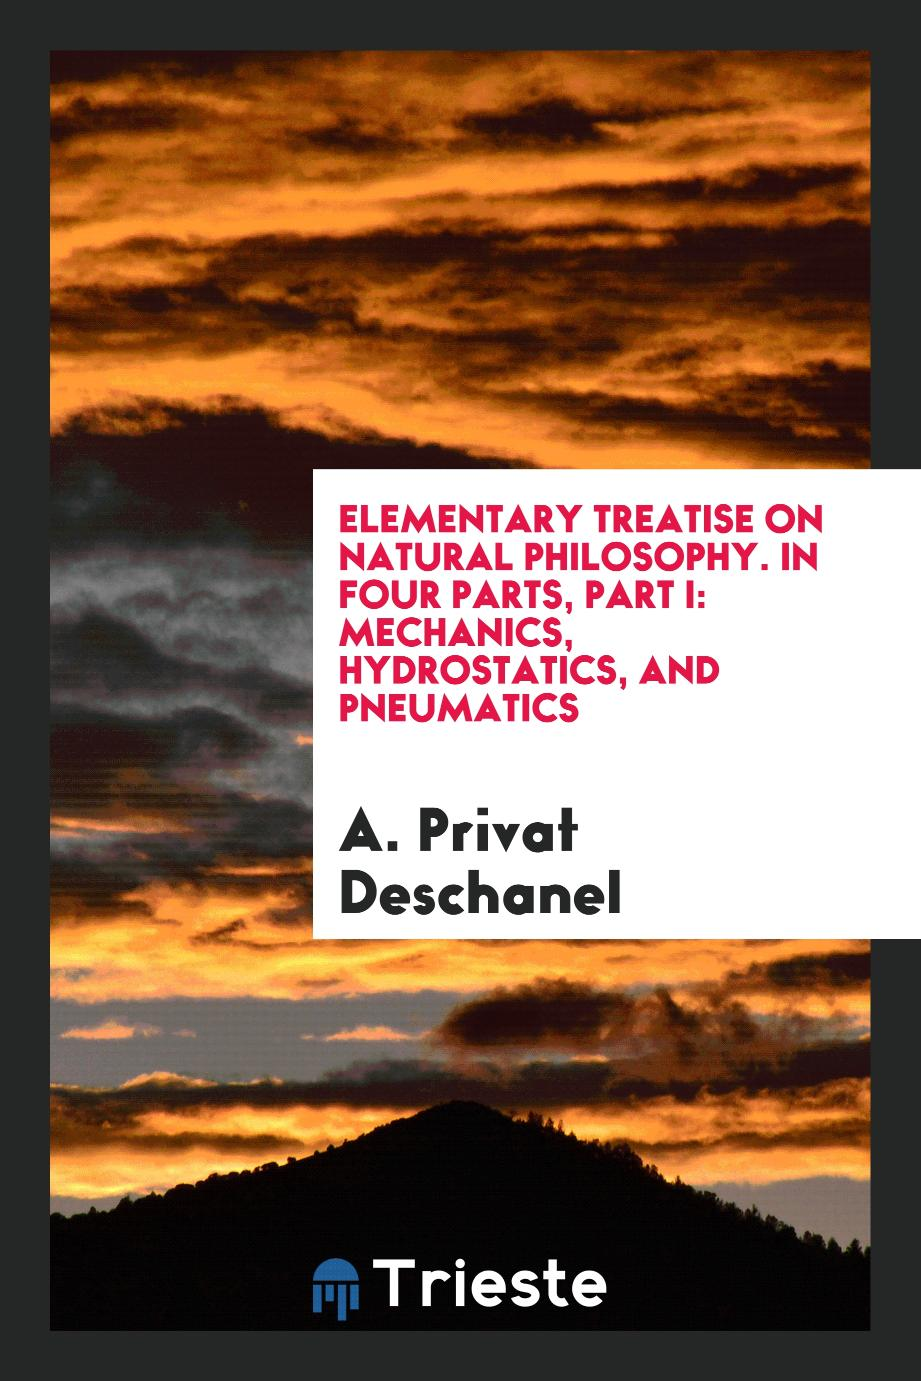 Elementary treatise on natural philosophy. In four parts, Part I: Mechanics, hydrostatics, and pneumatics